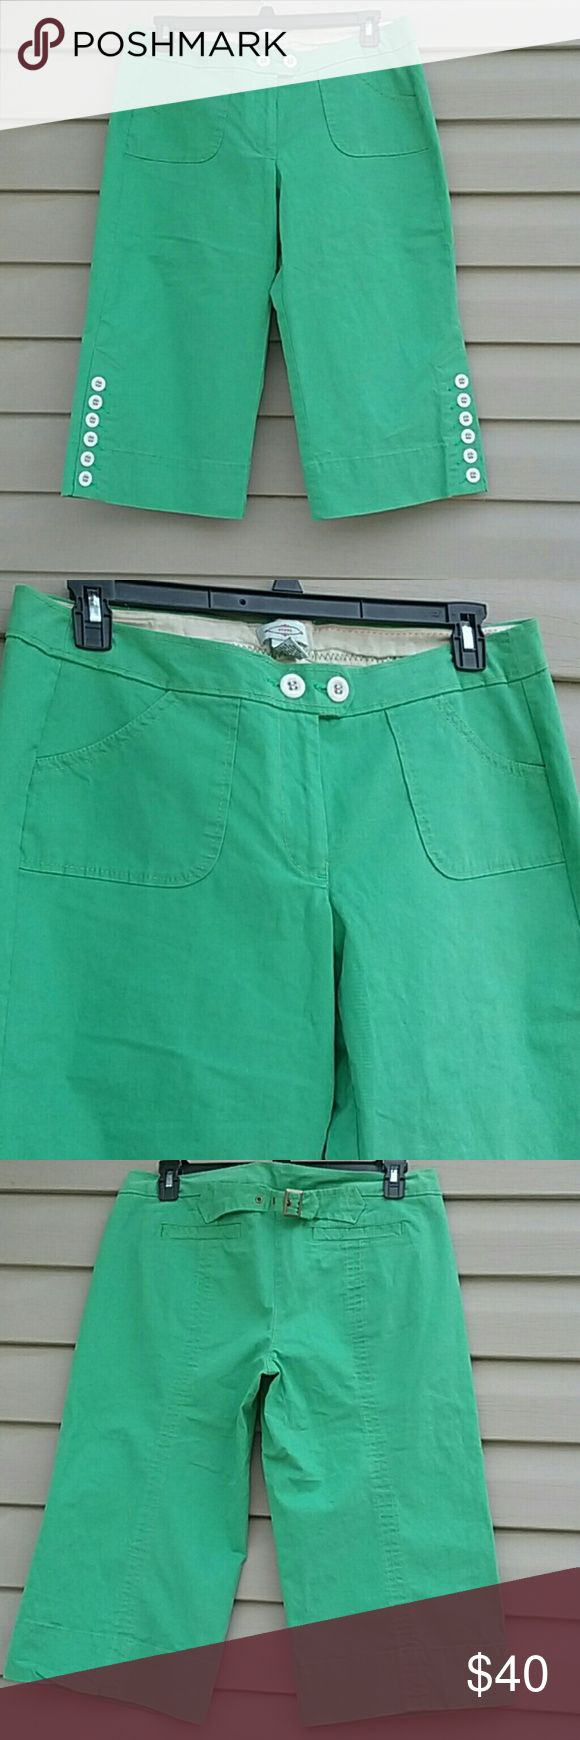 Anthro Sitwell capri pants Sitwell wide leg capri from Anthropologie,  very cute, worn once still in like new condition size 14 mint green color Anthropologie Pants Capris